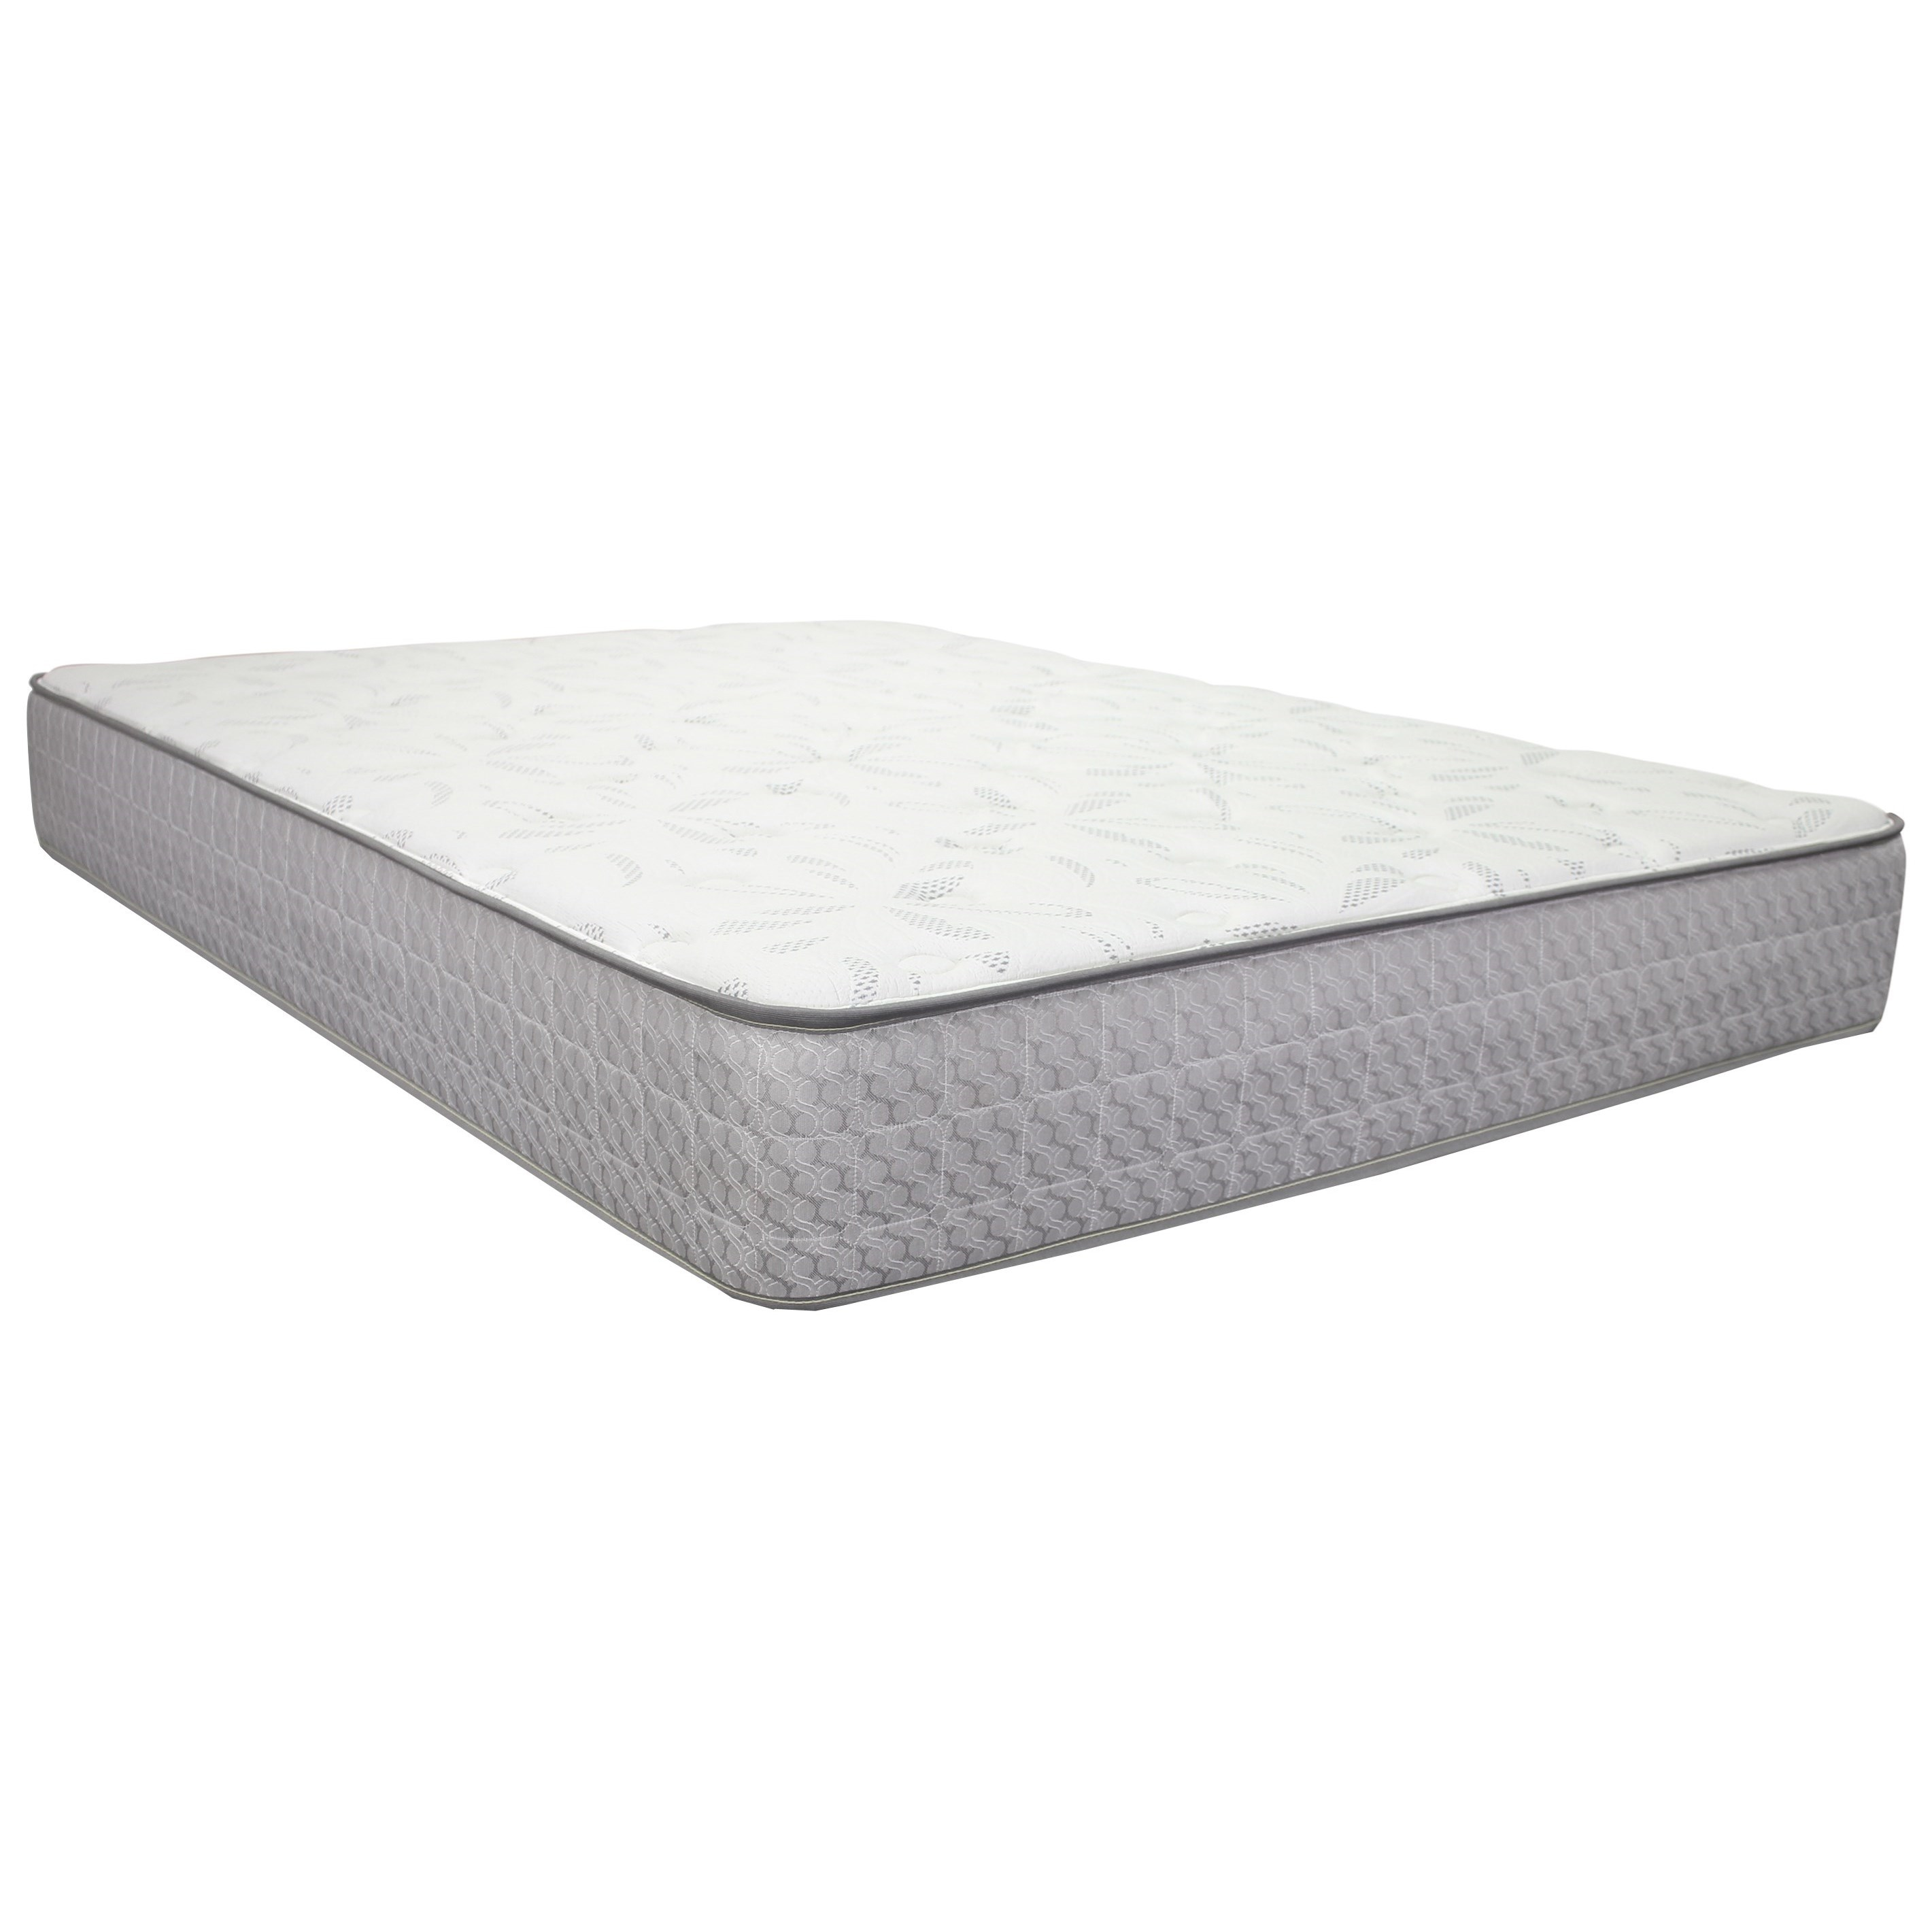 "King 10 1/2"" Plush Innerspring Mattress"